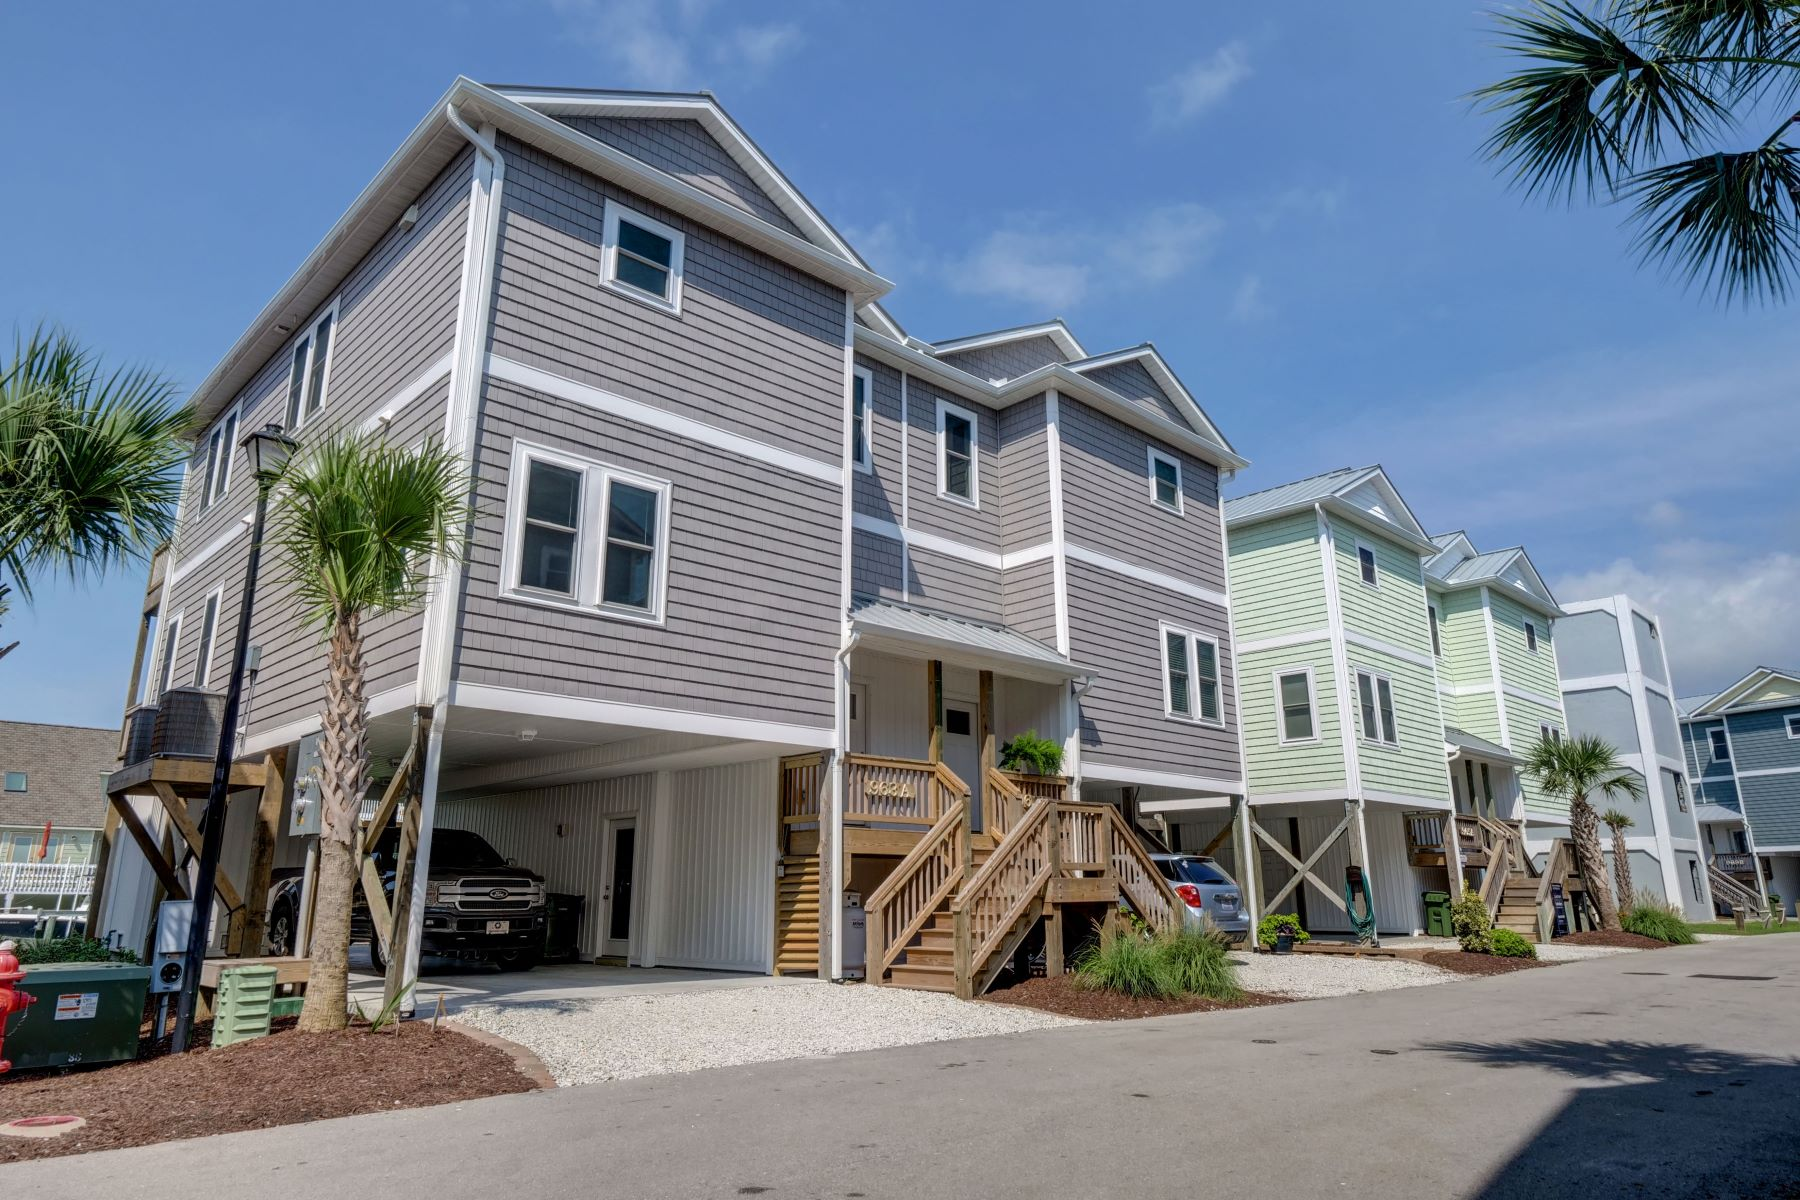 townhouses for Sale at Exquisite New Waterway Townhouse in Topsail Beach 963 A Tower Court Topsail Beach, North Carolina 28445 United States